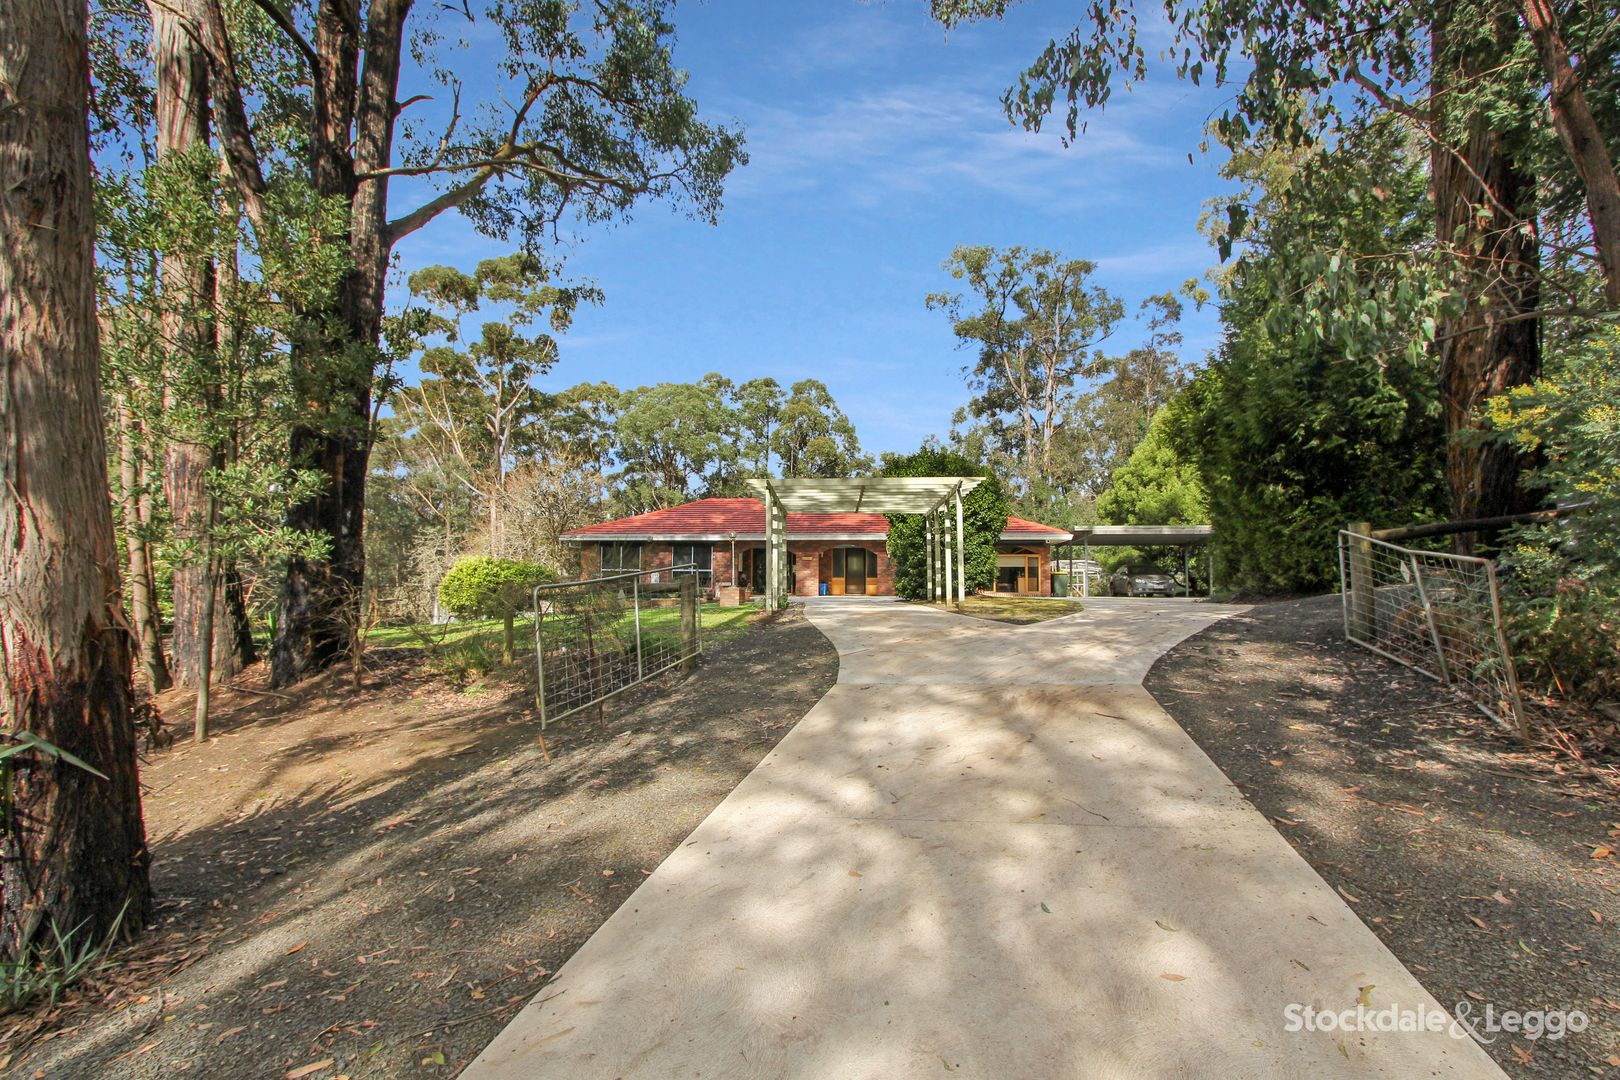 162 Darlimurla Road, Mirboo North VIC 3871, Image 0